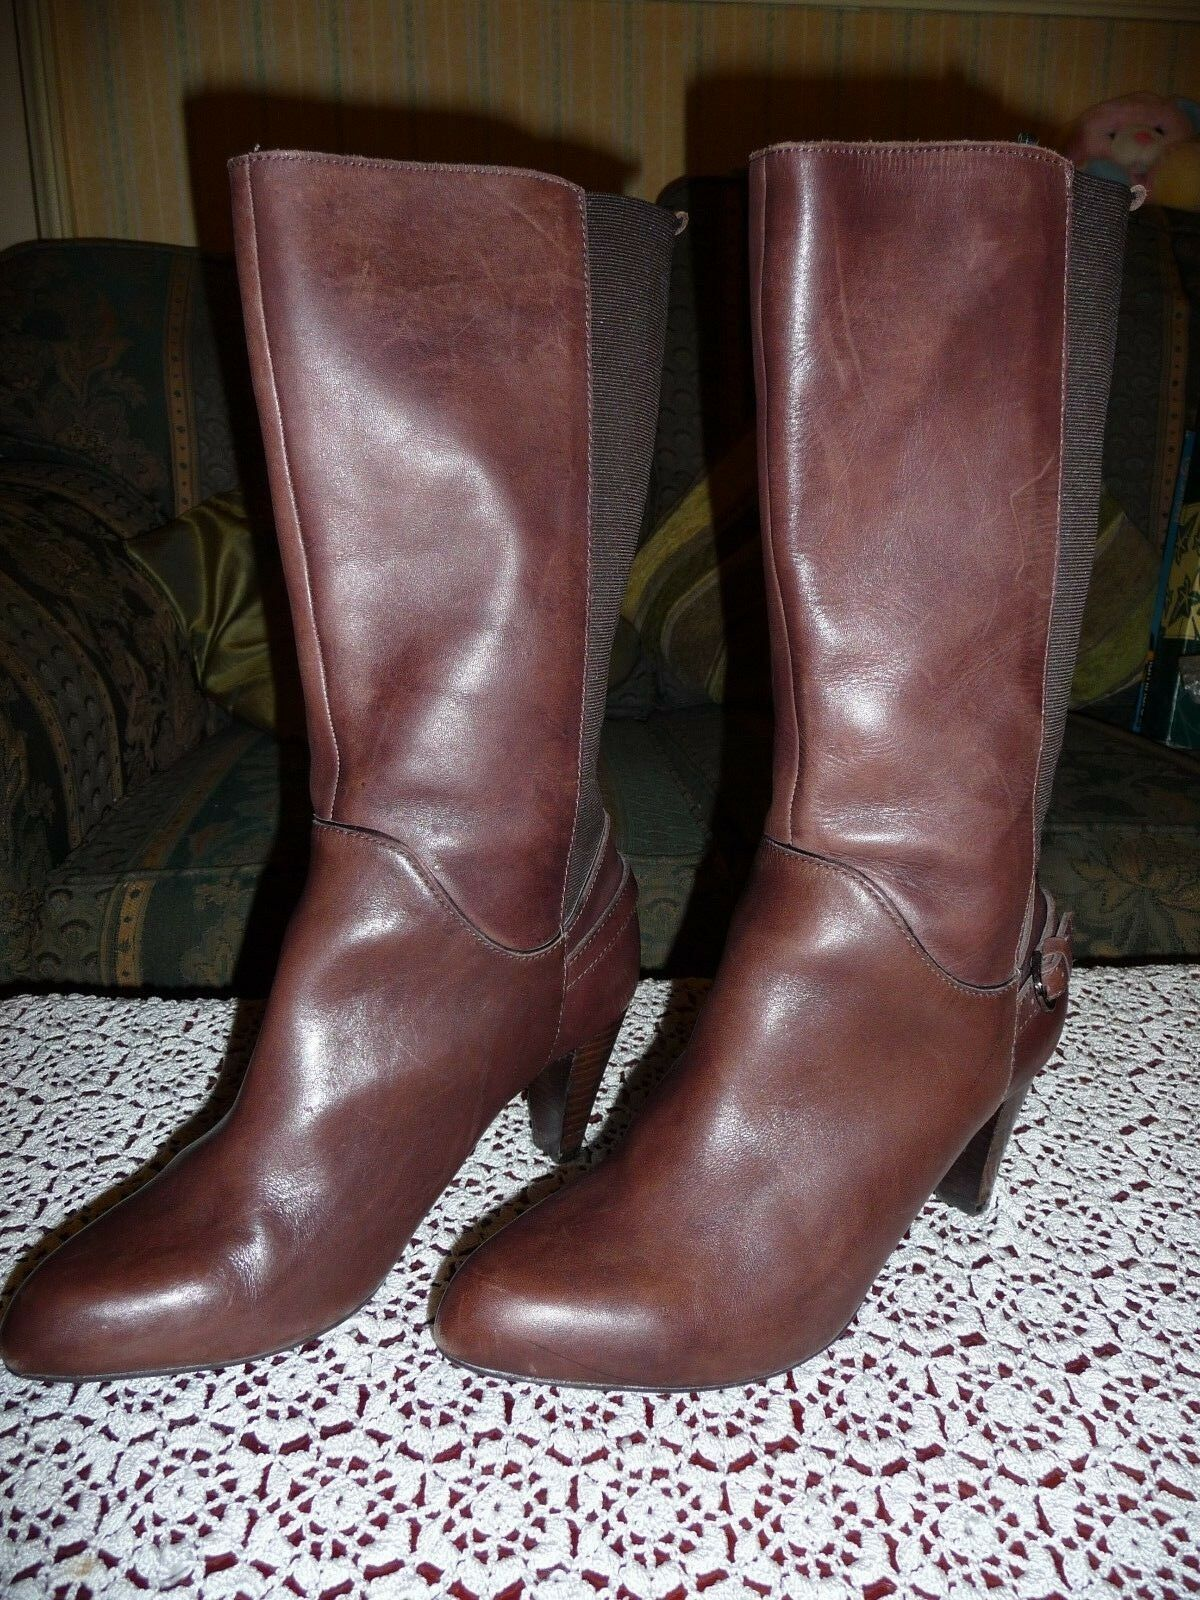 FOOTGLOVE (NOT M&S) WOMEN'S CALF LENGTH BROWN BOOTS SIZE 6.5'WIDER' FIT LEATHER